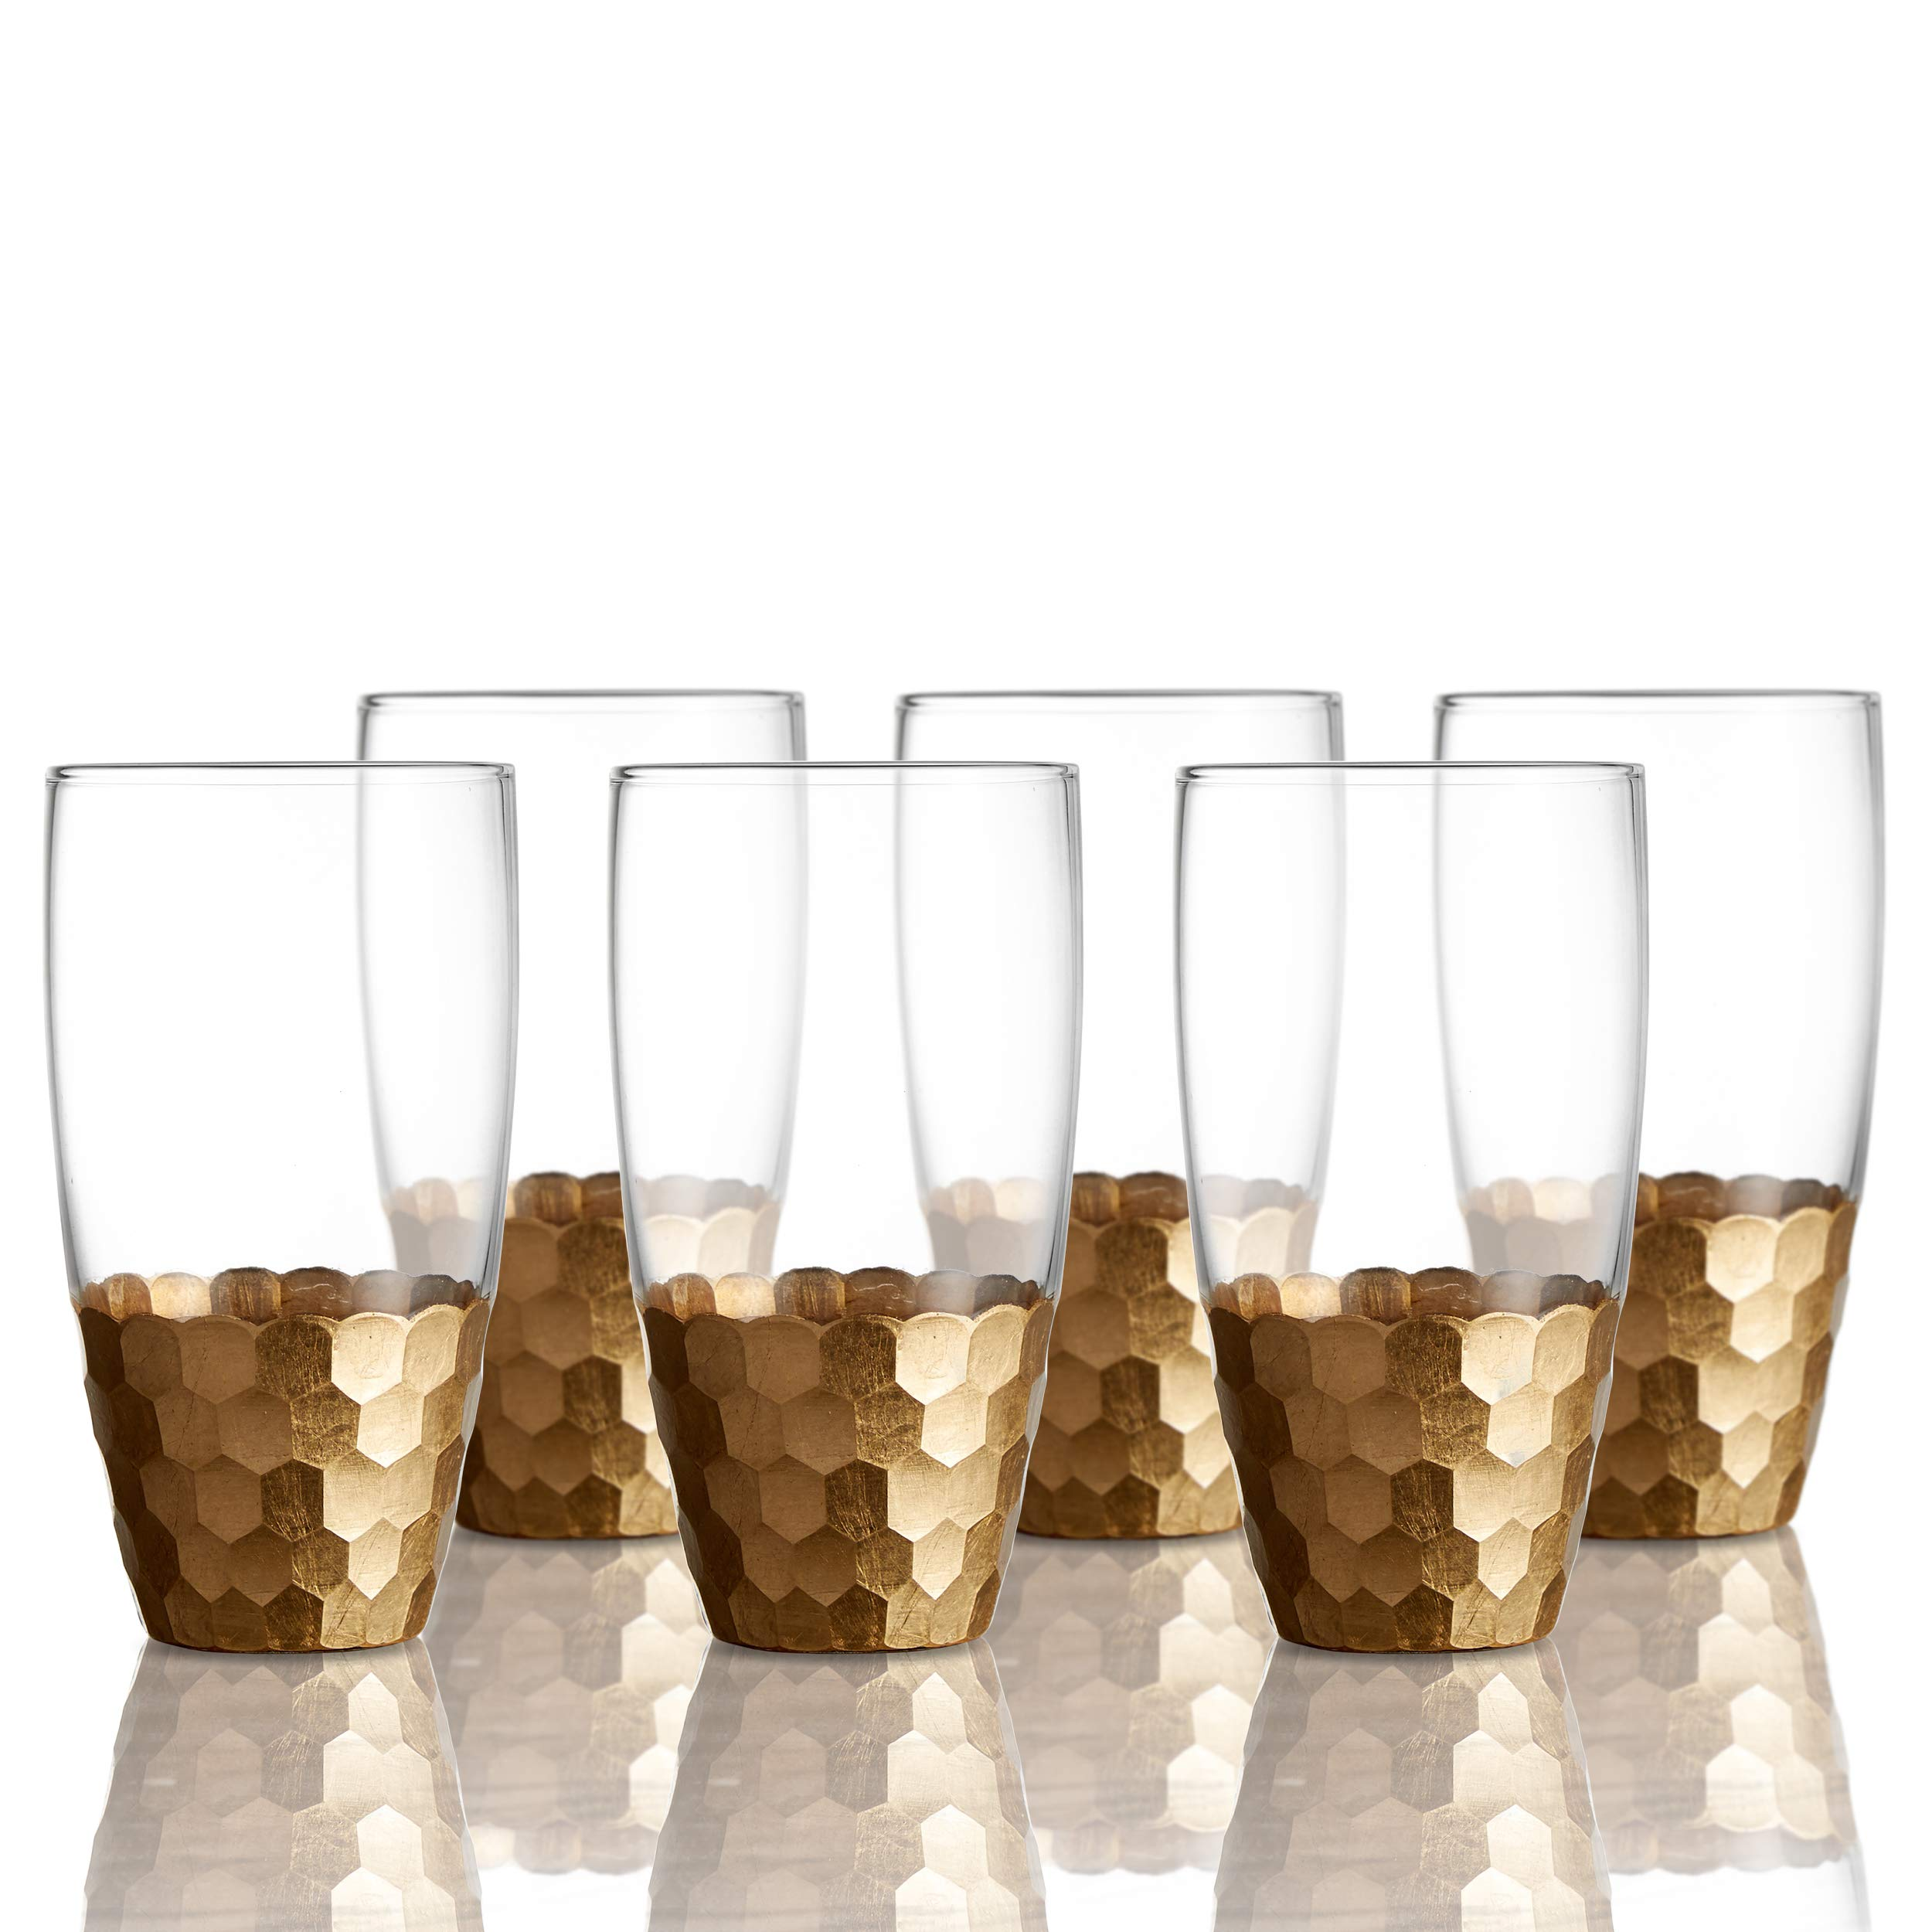 Fitz and Floyd 229705-6HB Daphne Highball Glass Set of 6 - Elegant Lead-free Matching Drinkware Perfect For Everyday Use Or Entertaining - Stylish Modern. An Ideal Gift, 3.3x5.9'', Gold